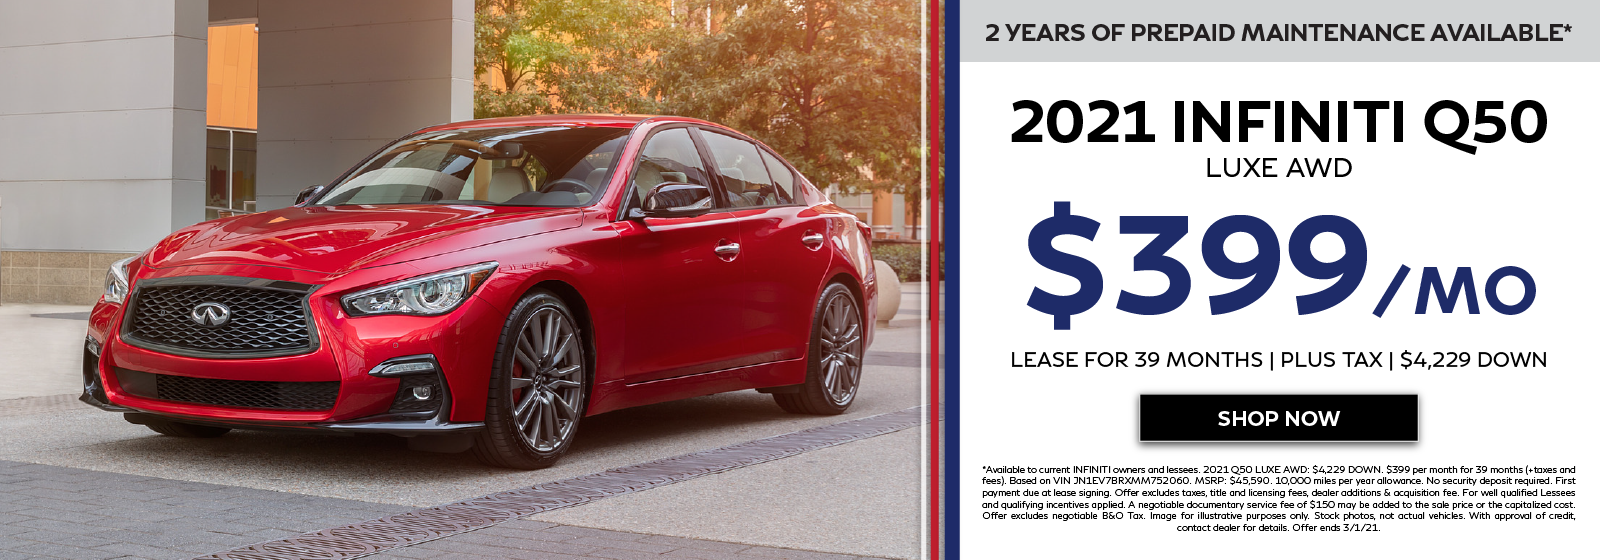 2021 INFINITI Q50 Offers. Click to shop now.